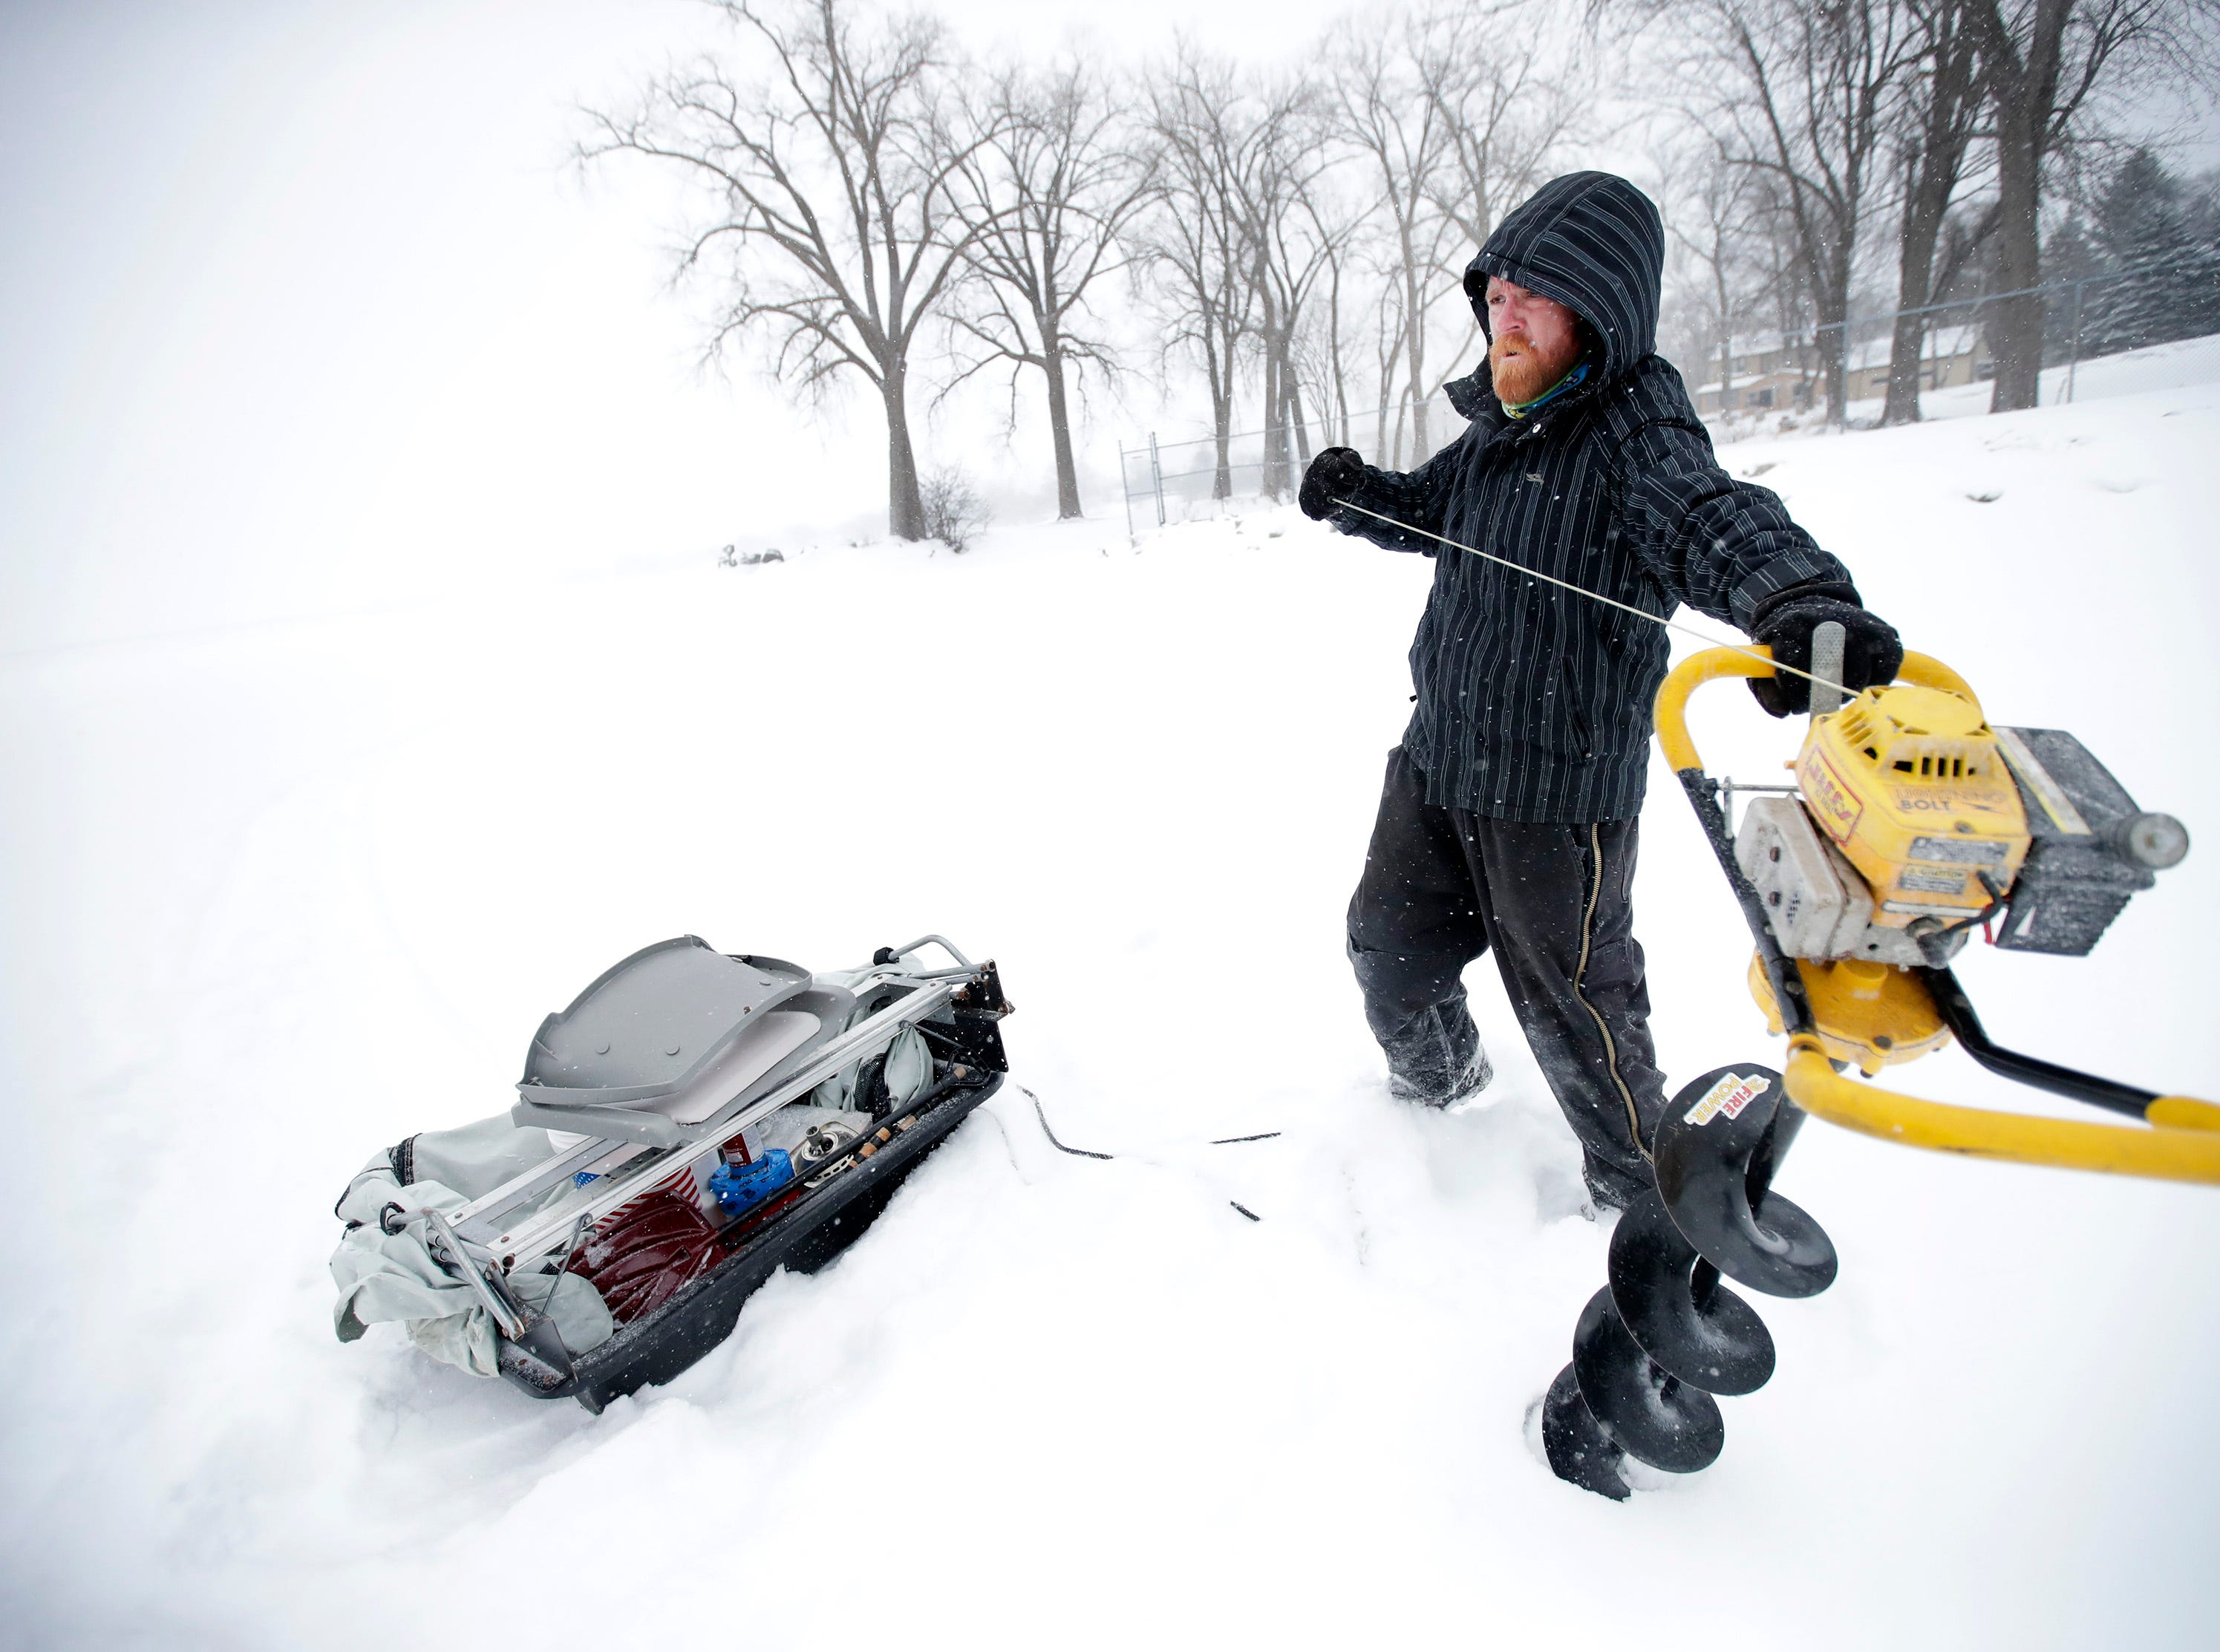 Steve Montgomery, of Menasha, turns on his ice auger as he gets ready to go ice fishing in front of the Menasha Lock during a snowstorm Monday, Jan. 28, 2019, in Menasha, Wis.